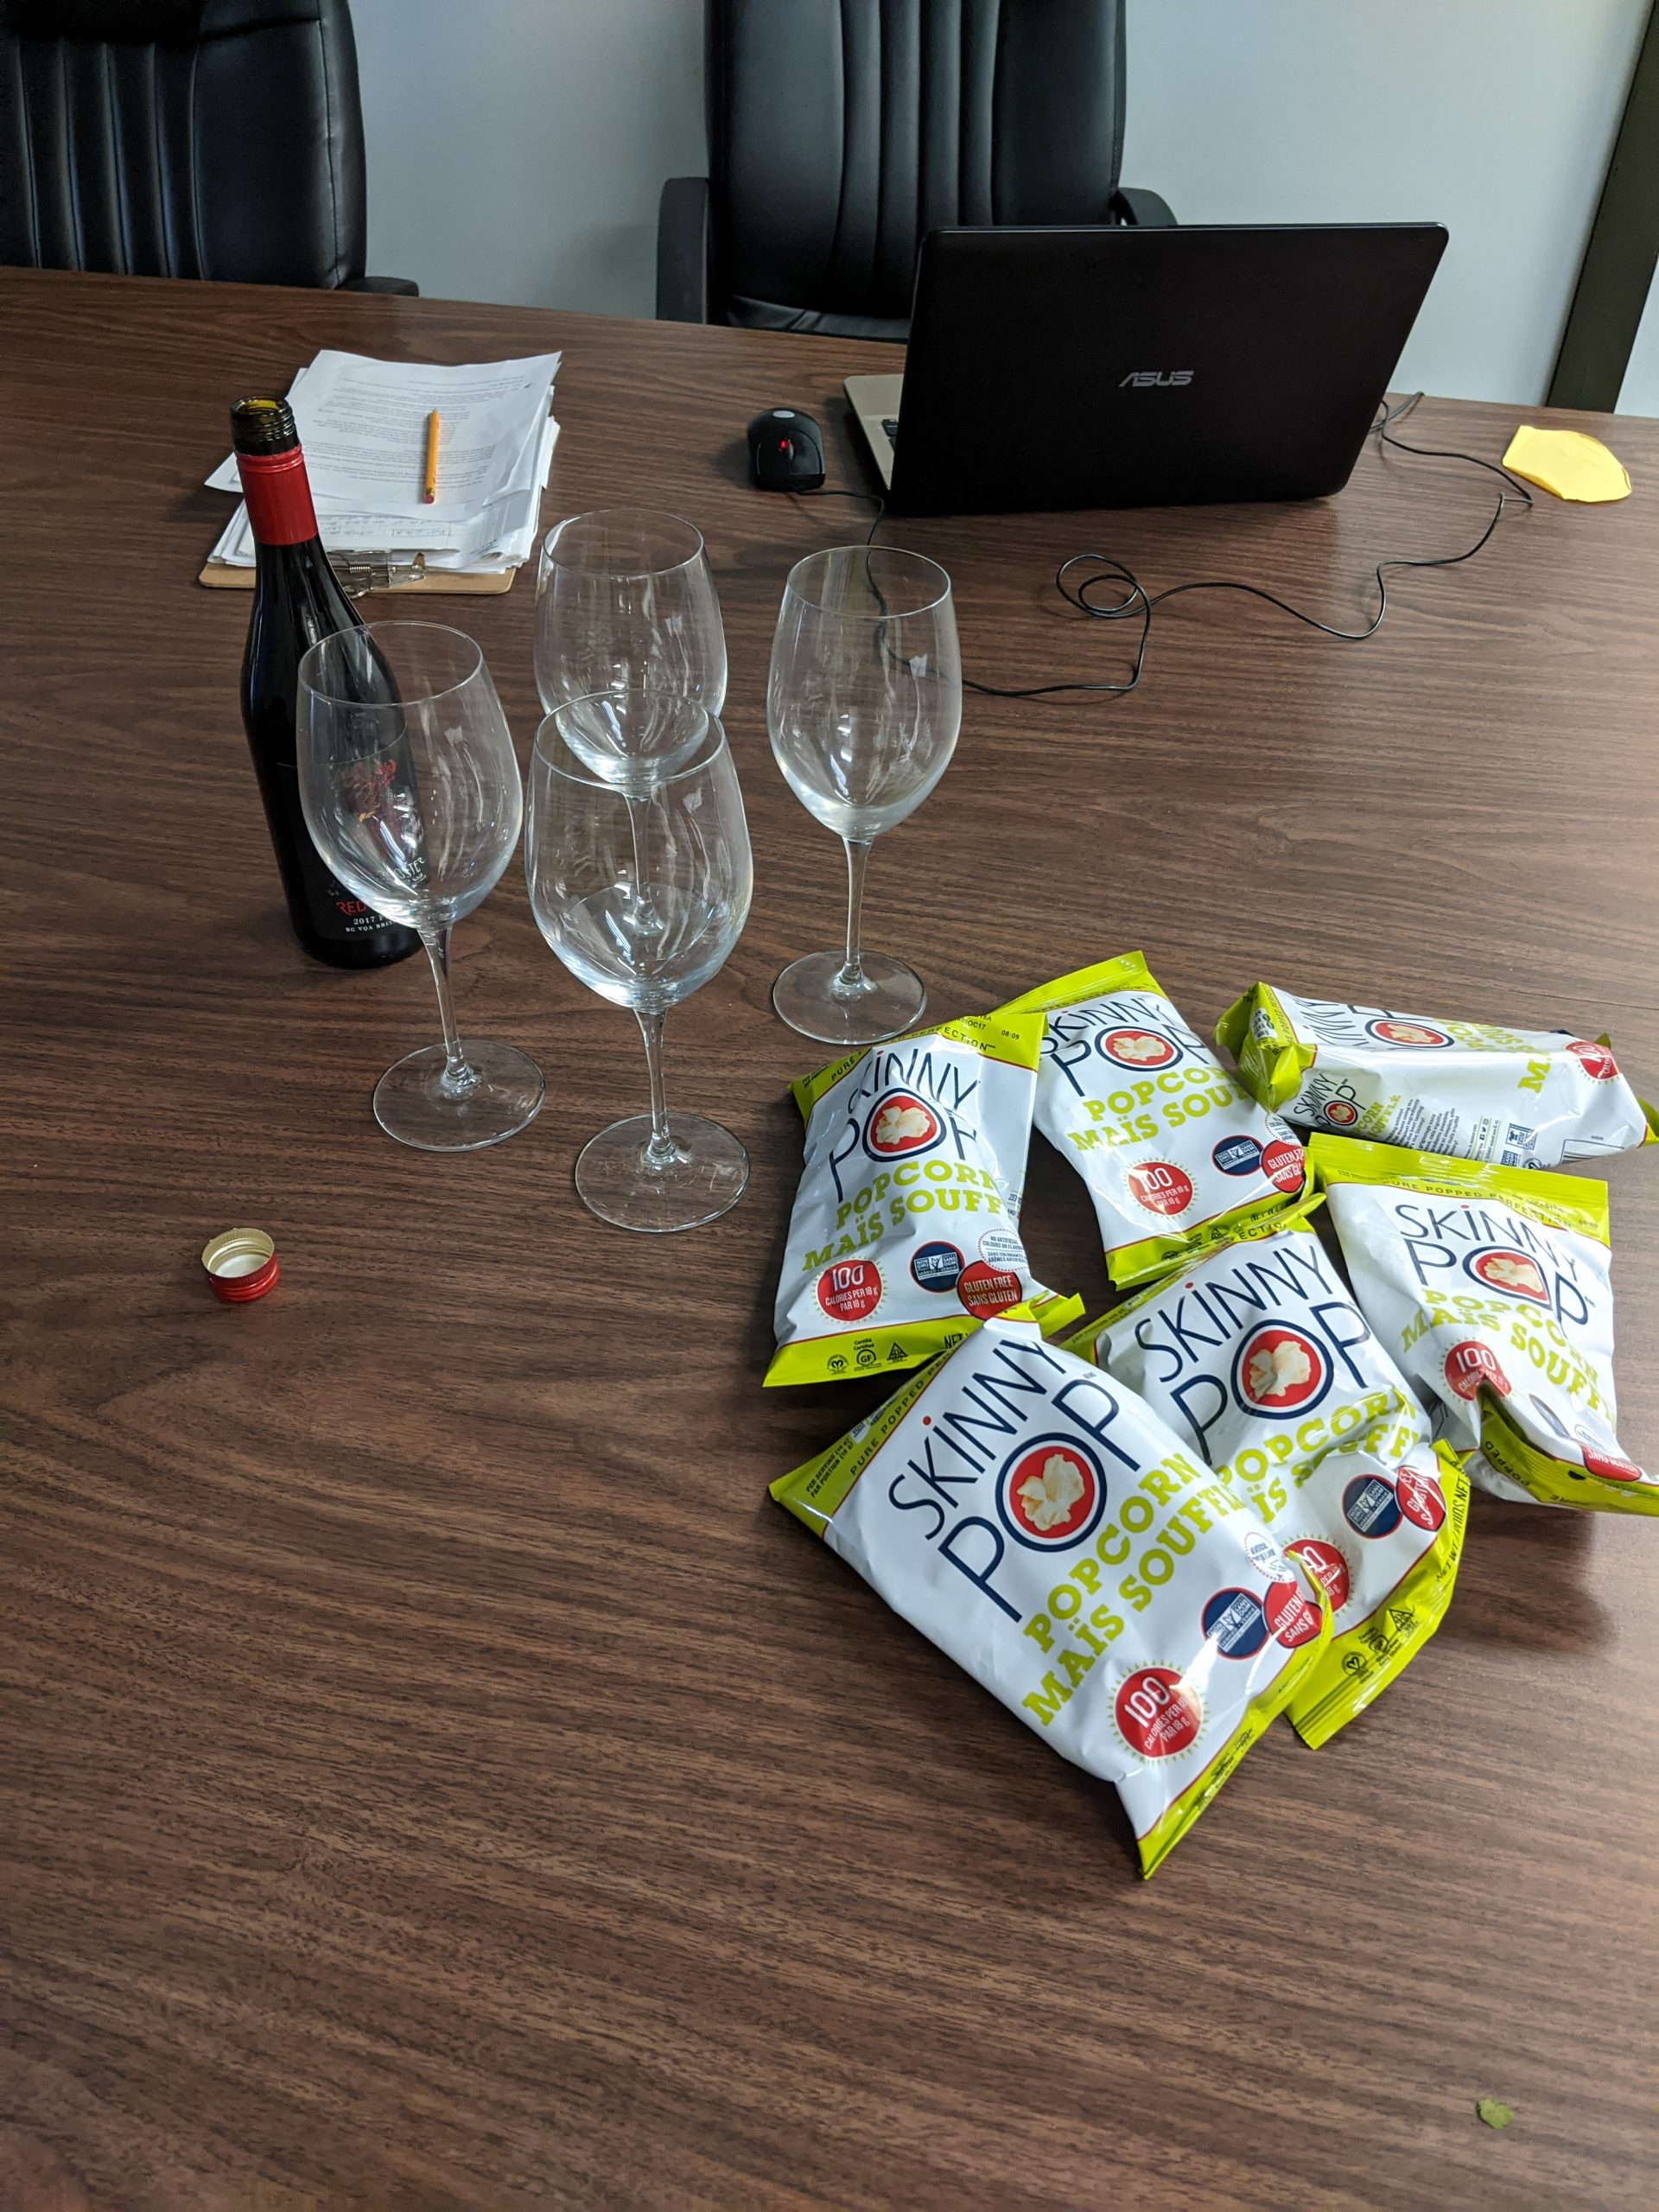 A bottle of red wine sits beside a group of four wine glasses and a pile of individual sized bags of popcorn, waiting for Blind Beginnings staff to partake.